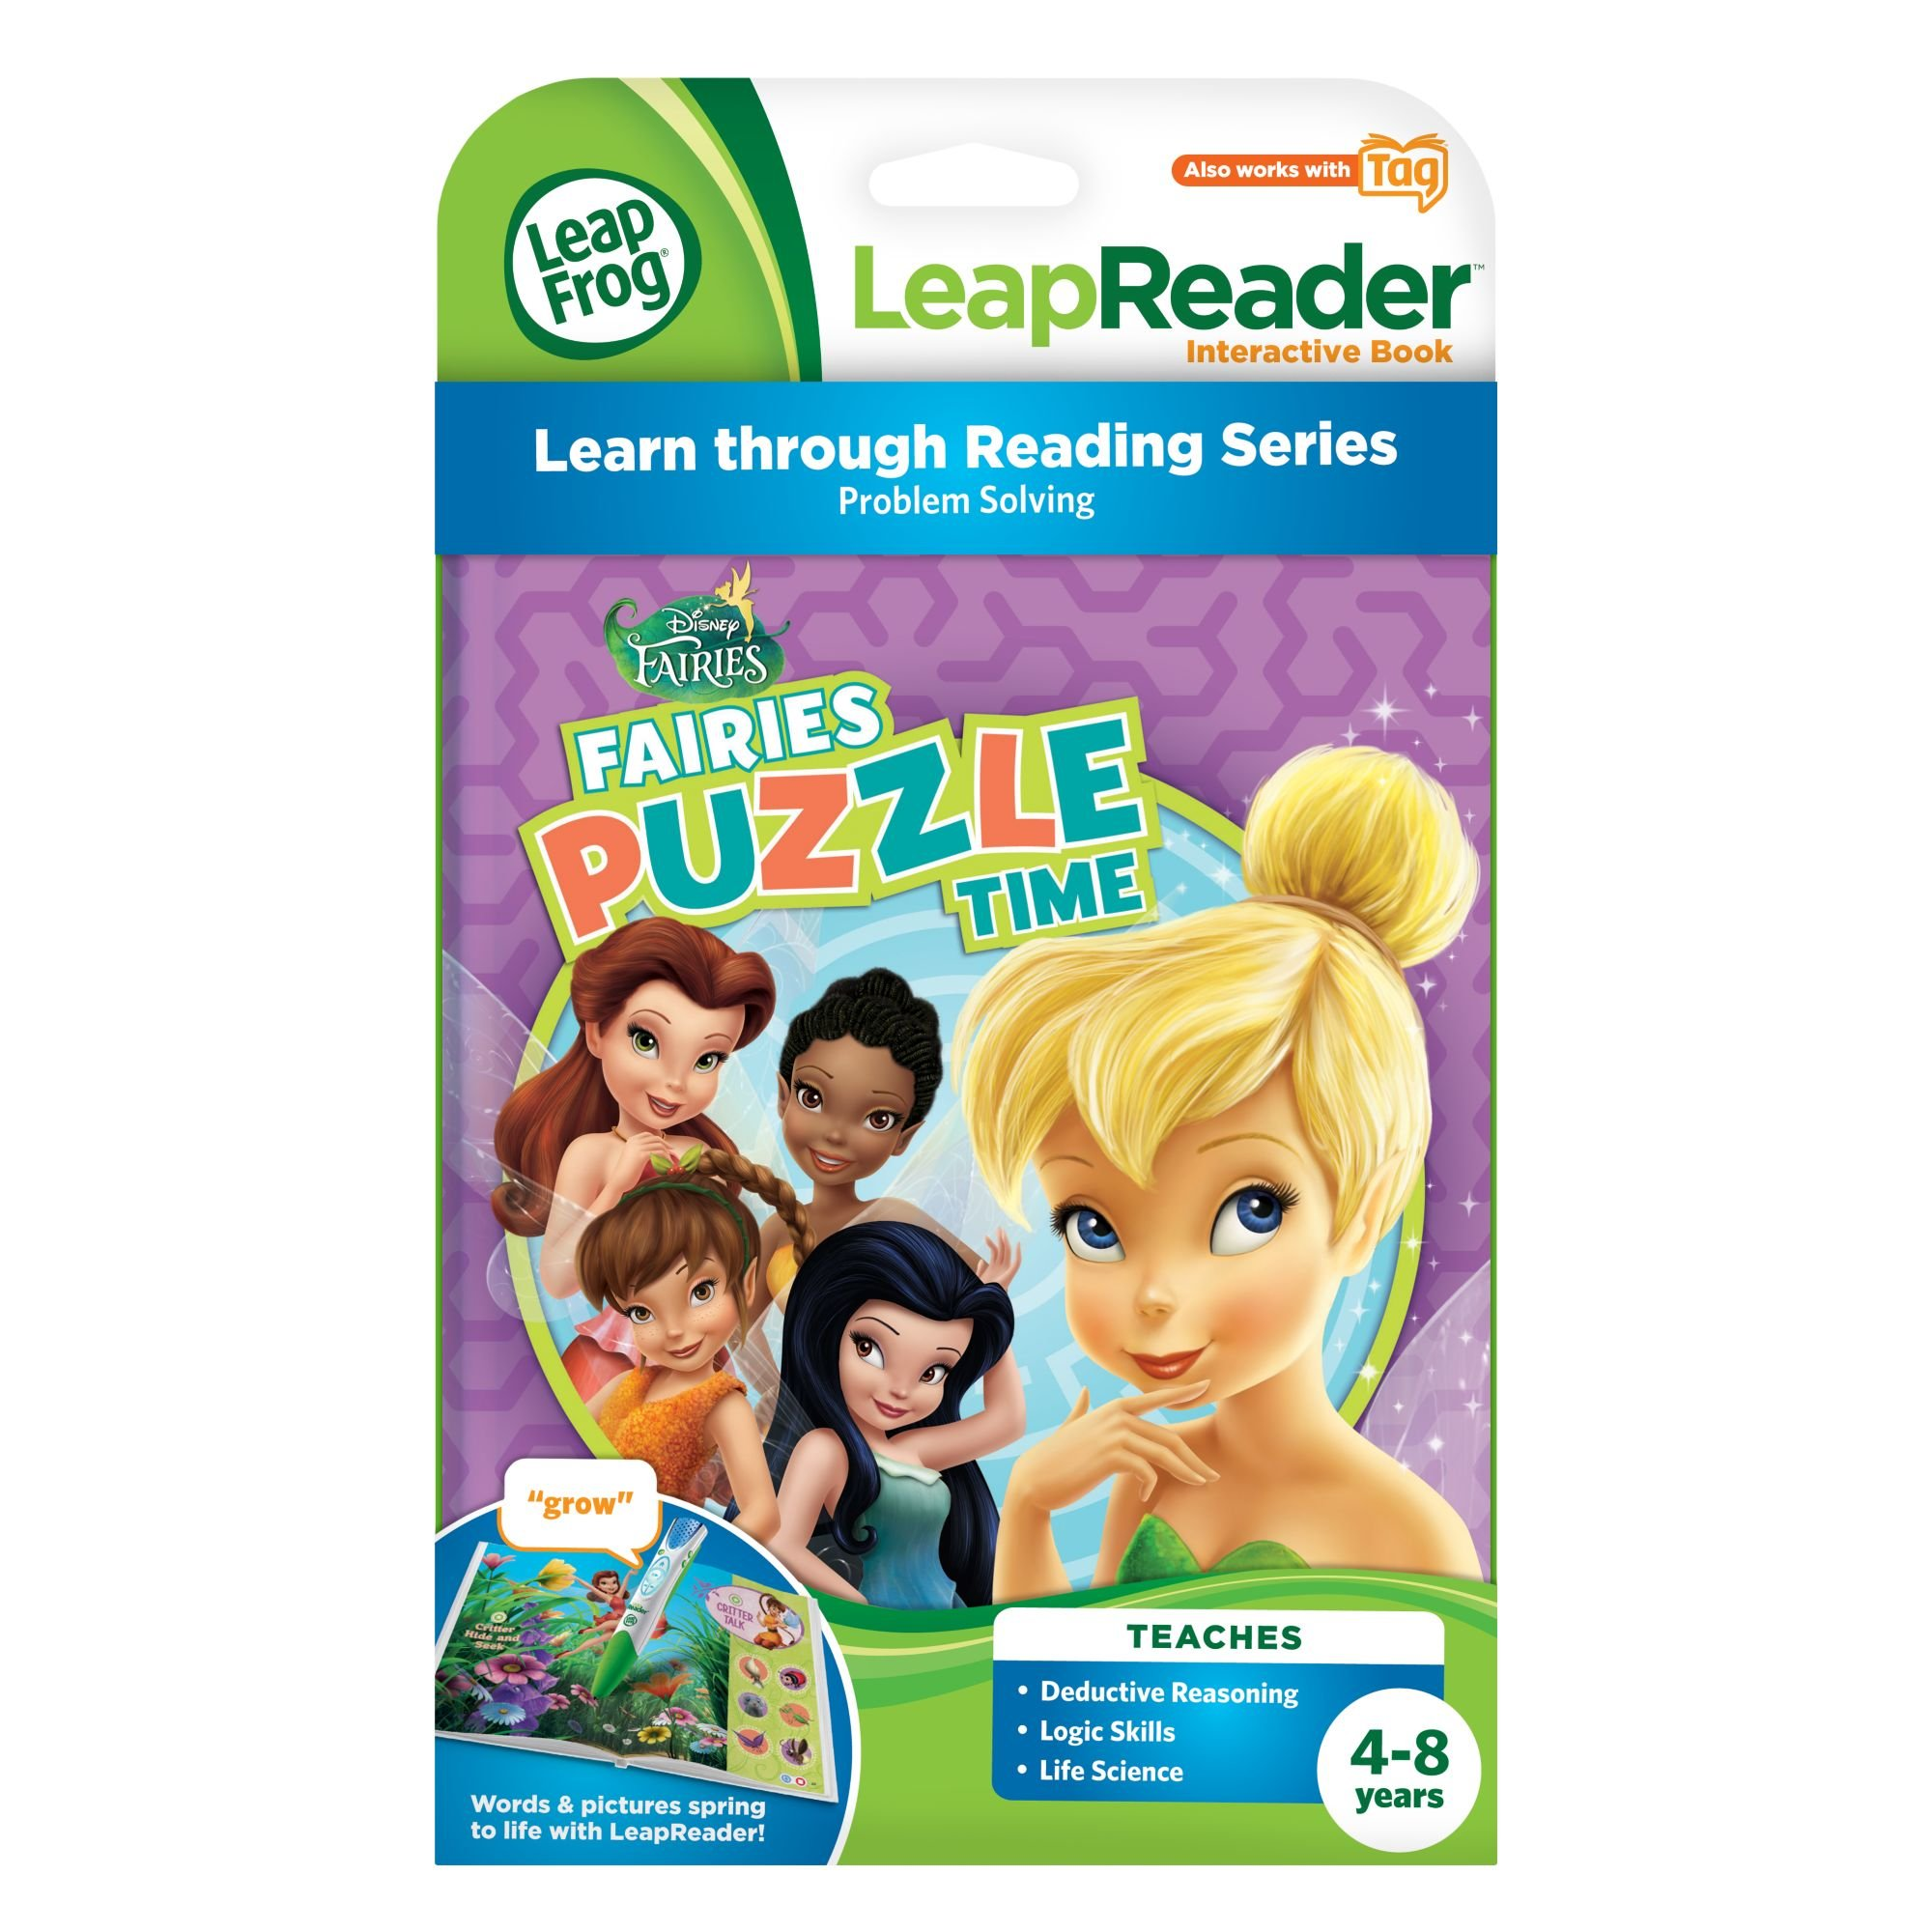 LeapFrog LeapReader Book: Disney Fairies Puzzle Time (works with Tag) by LeapFrog (Image #3)